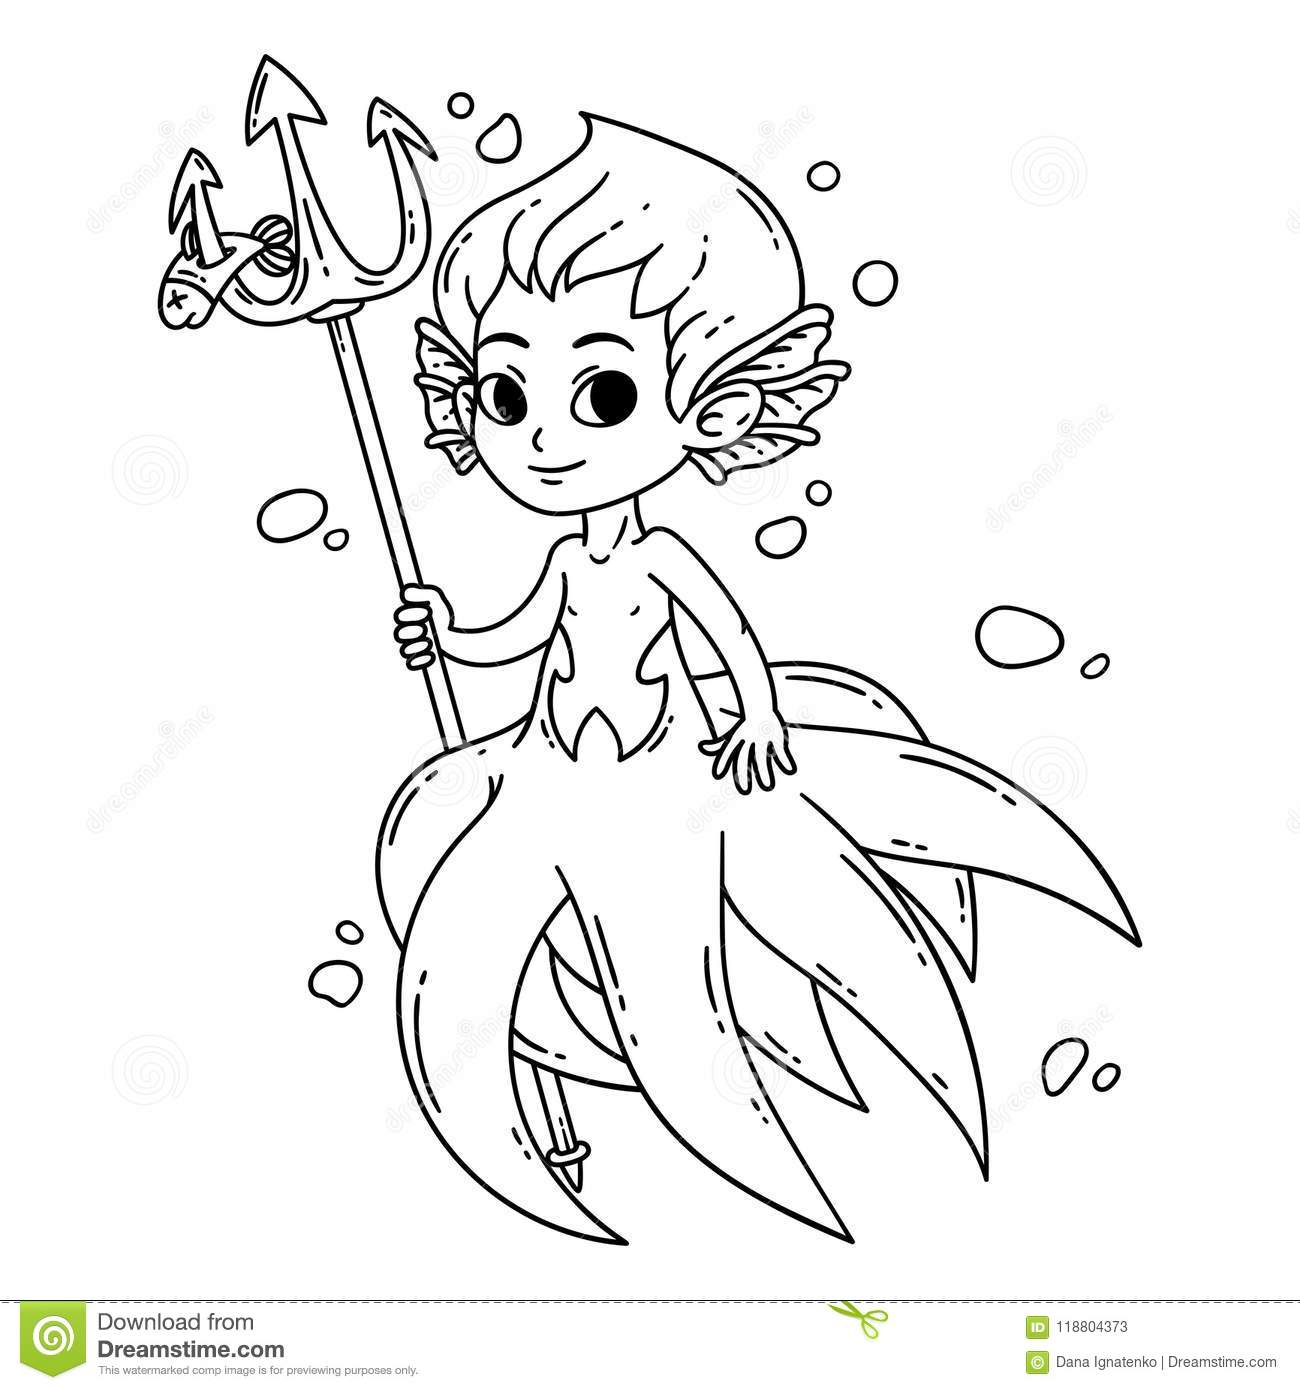 mermaidman and barnacle boy coloring pages   Male Mermaid. Vector Illustration. Coloring Page. Stock ...